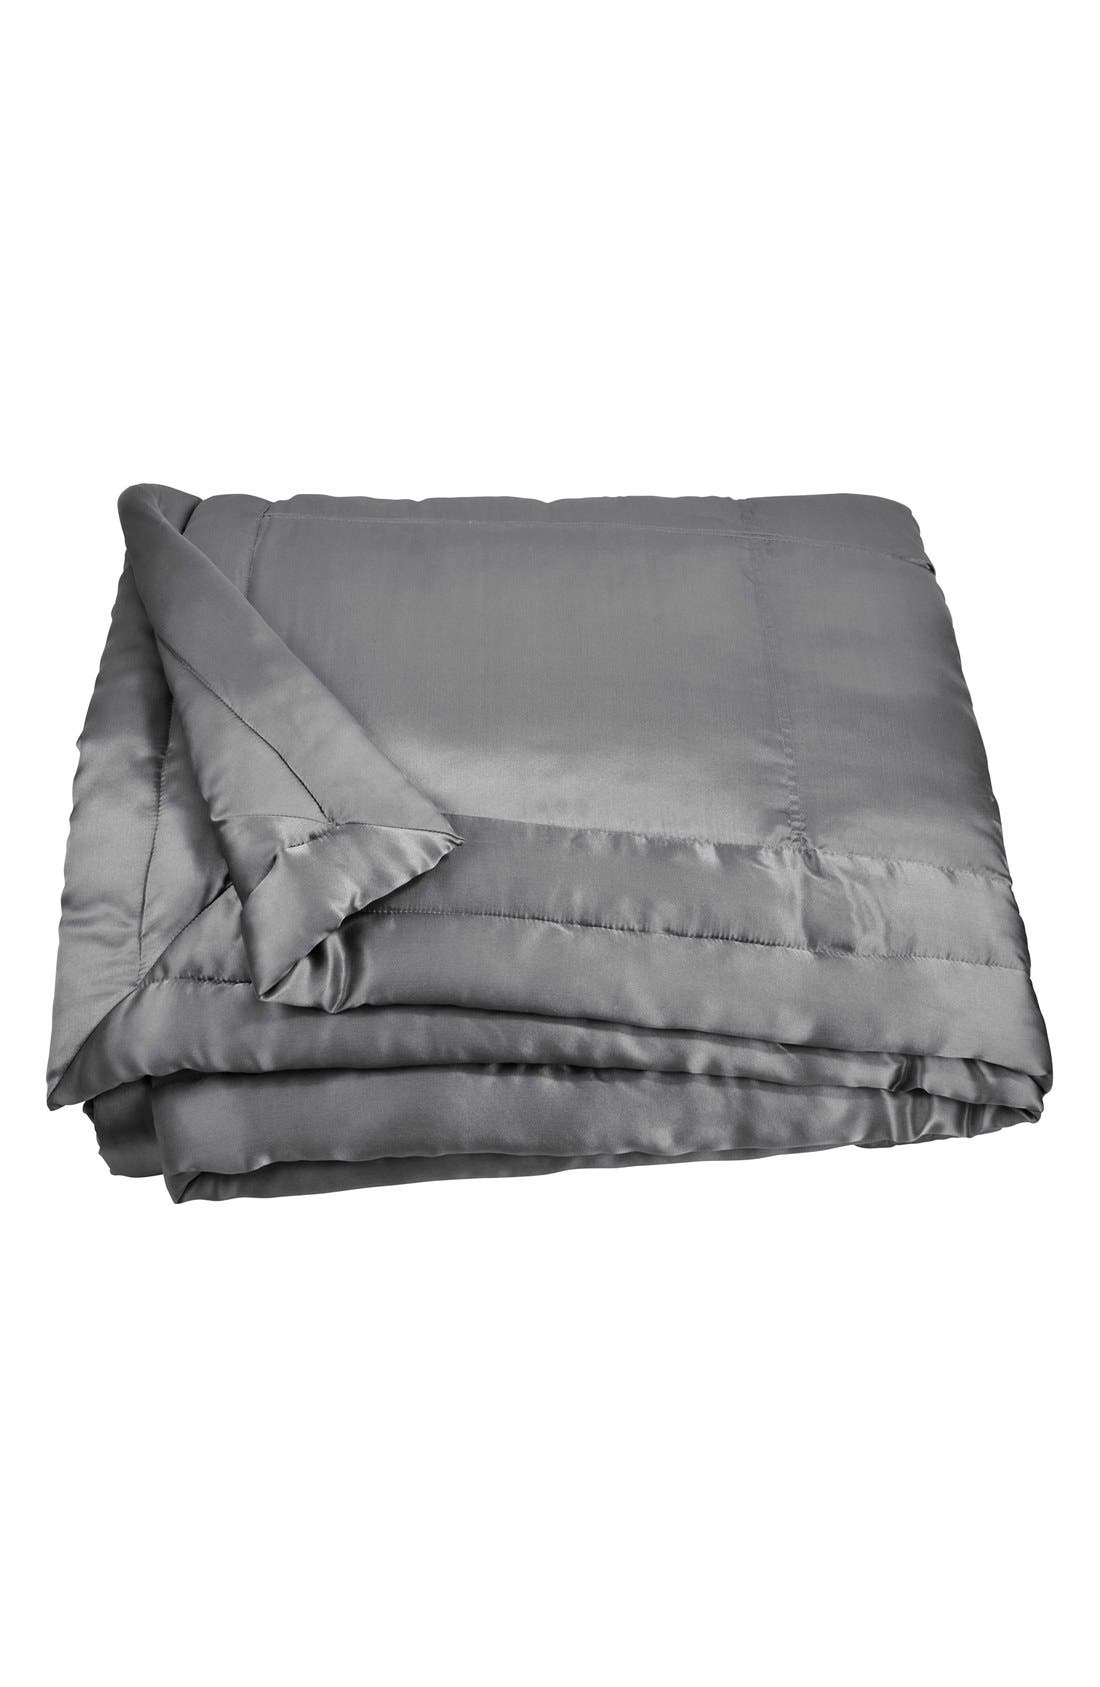 Donna Karan Collection 'Surface' Silk Charmeuse Quilt,                             Alternate thumbnail 2, color,                             CHARCOAL